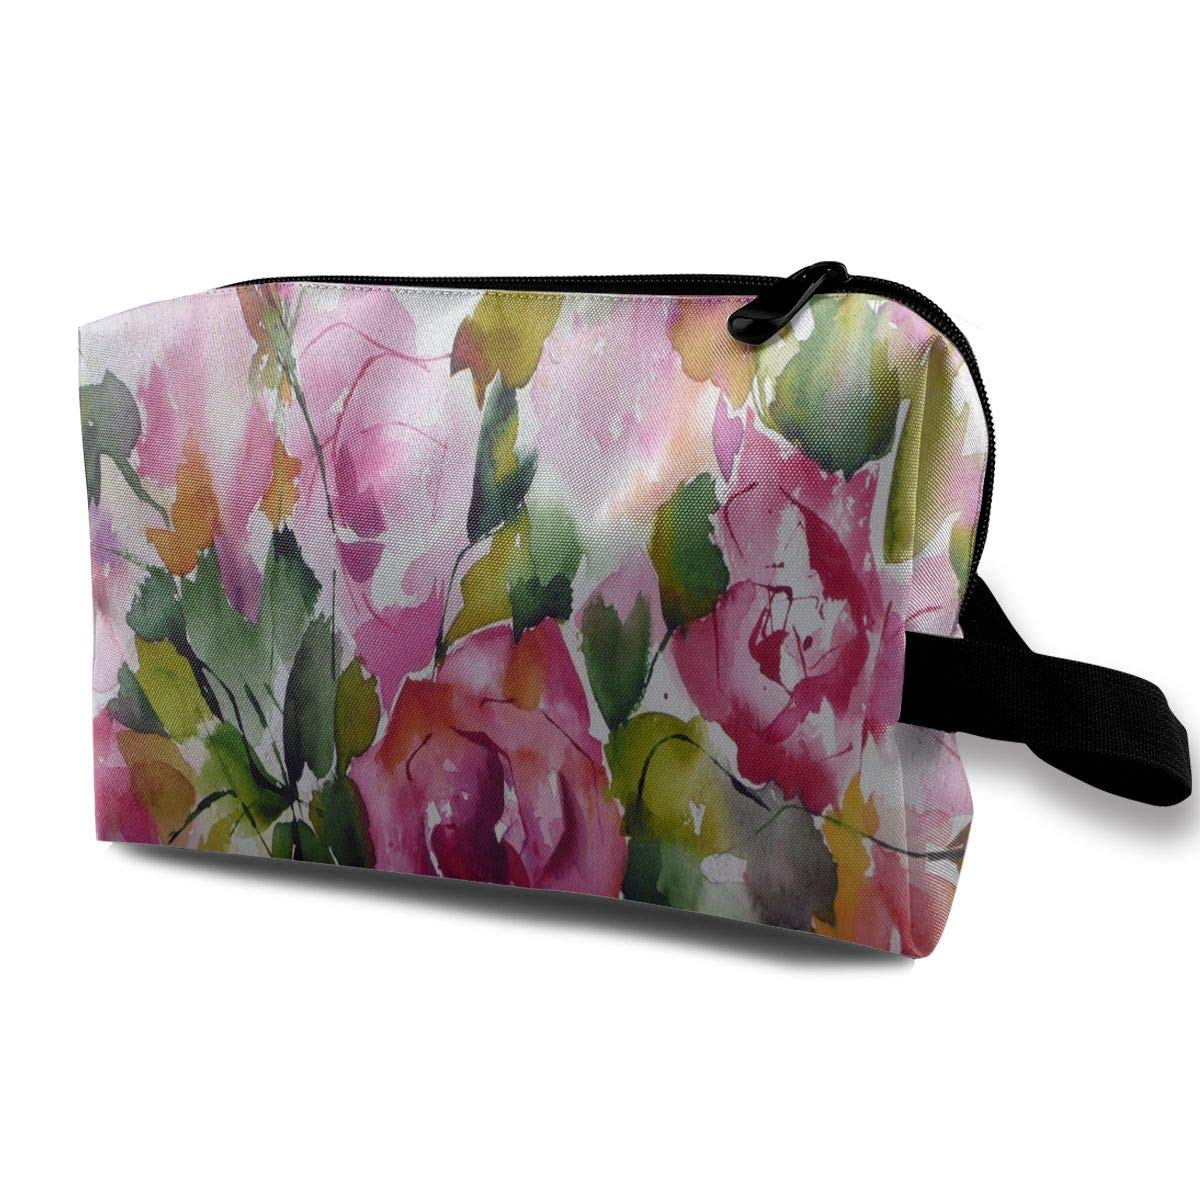 Makeup Bag Watercolor Painting Of Flowers Portable Travel Multifunction Cosmetic Bags Customized Case For Girls